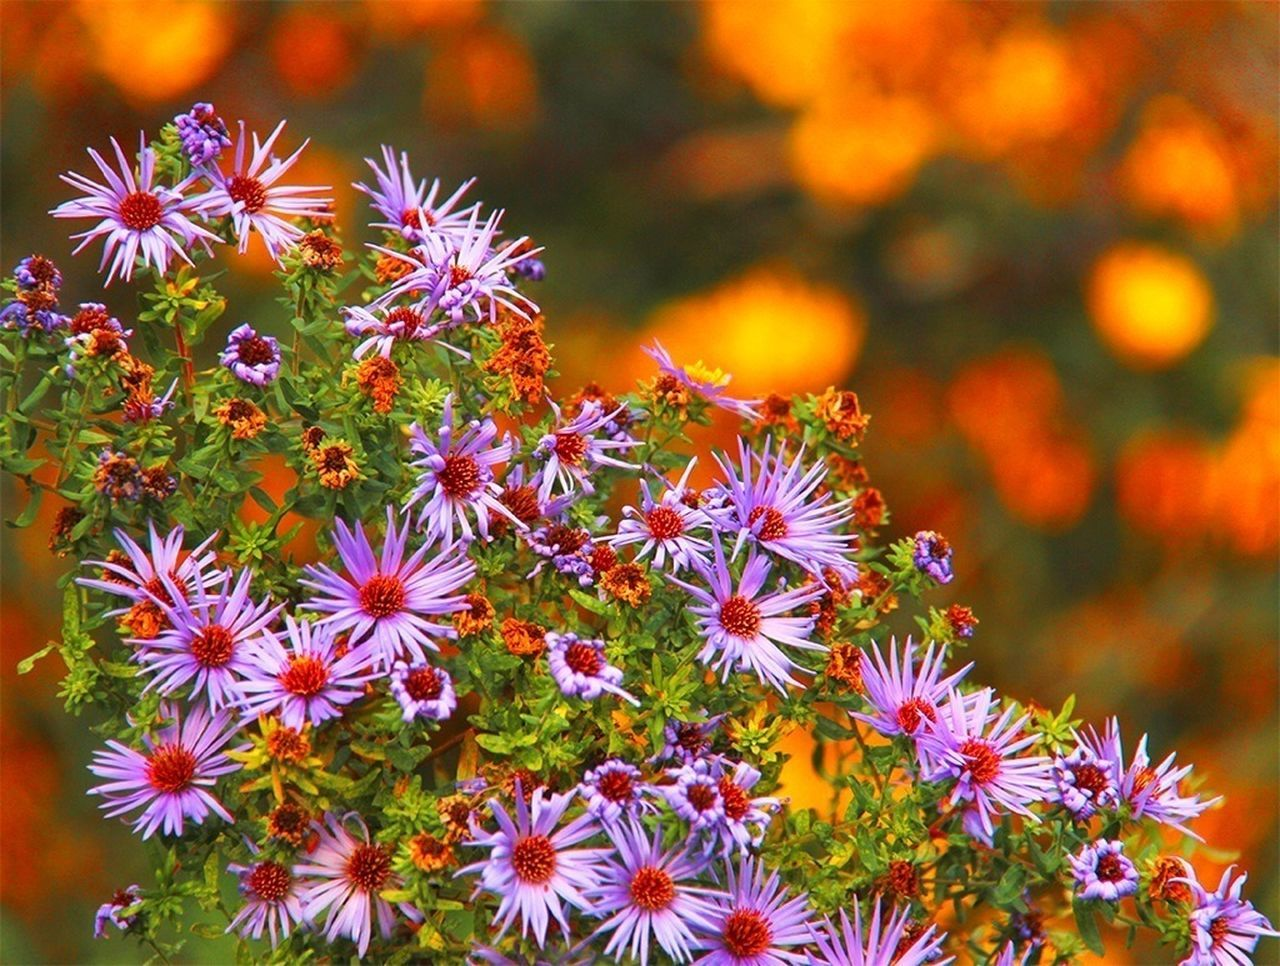 flower, petal, growth, flower head, nature, beauty in nature, fragility, freshness, plant, blooming, no people, outdoors, day, close-up